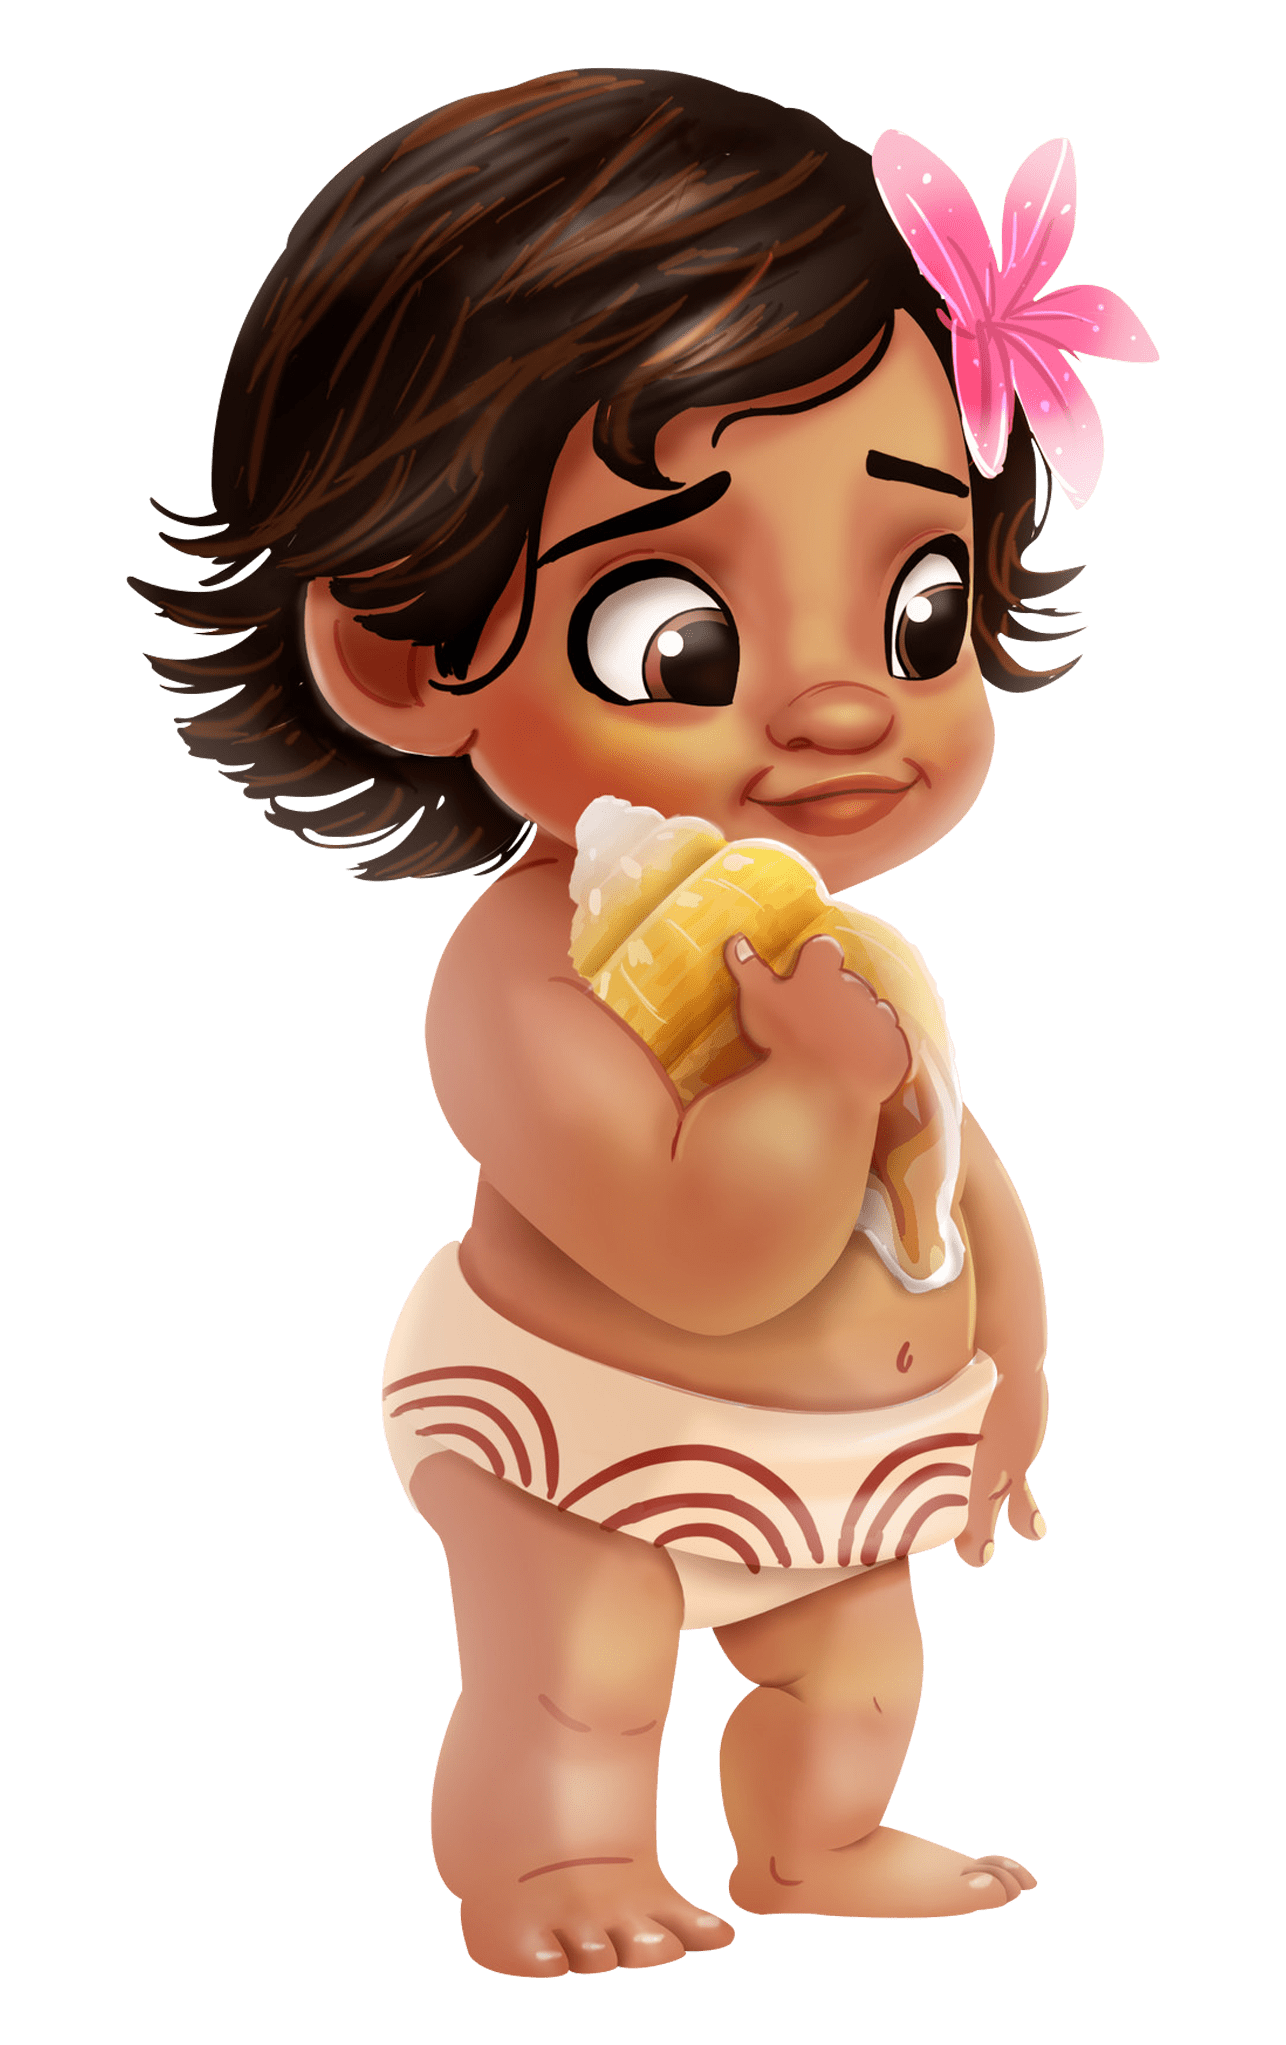 Drawing moana cute baby. Diy tumblers and svgs